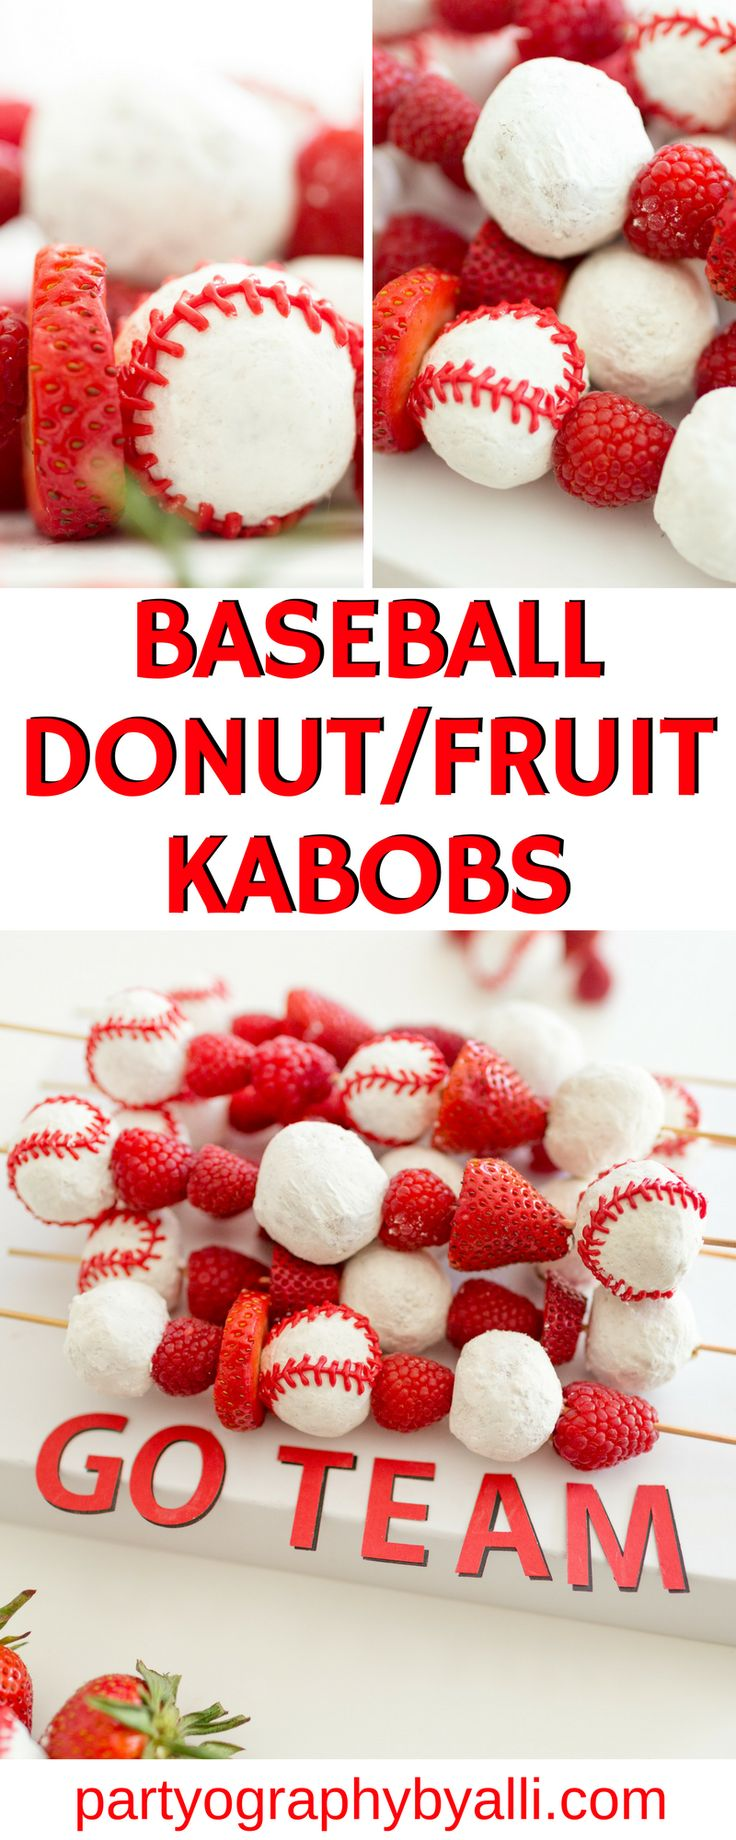 Baseball Donut & Fruit Kabobs, Baseball Party Food, Team Snack Ideas, Baseball birthday party ideas